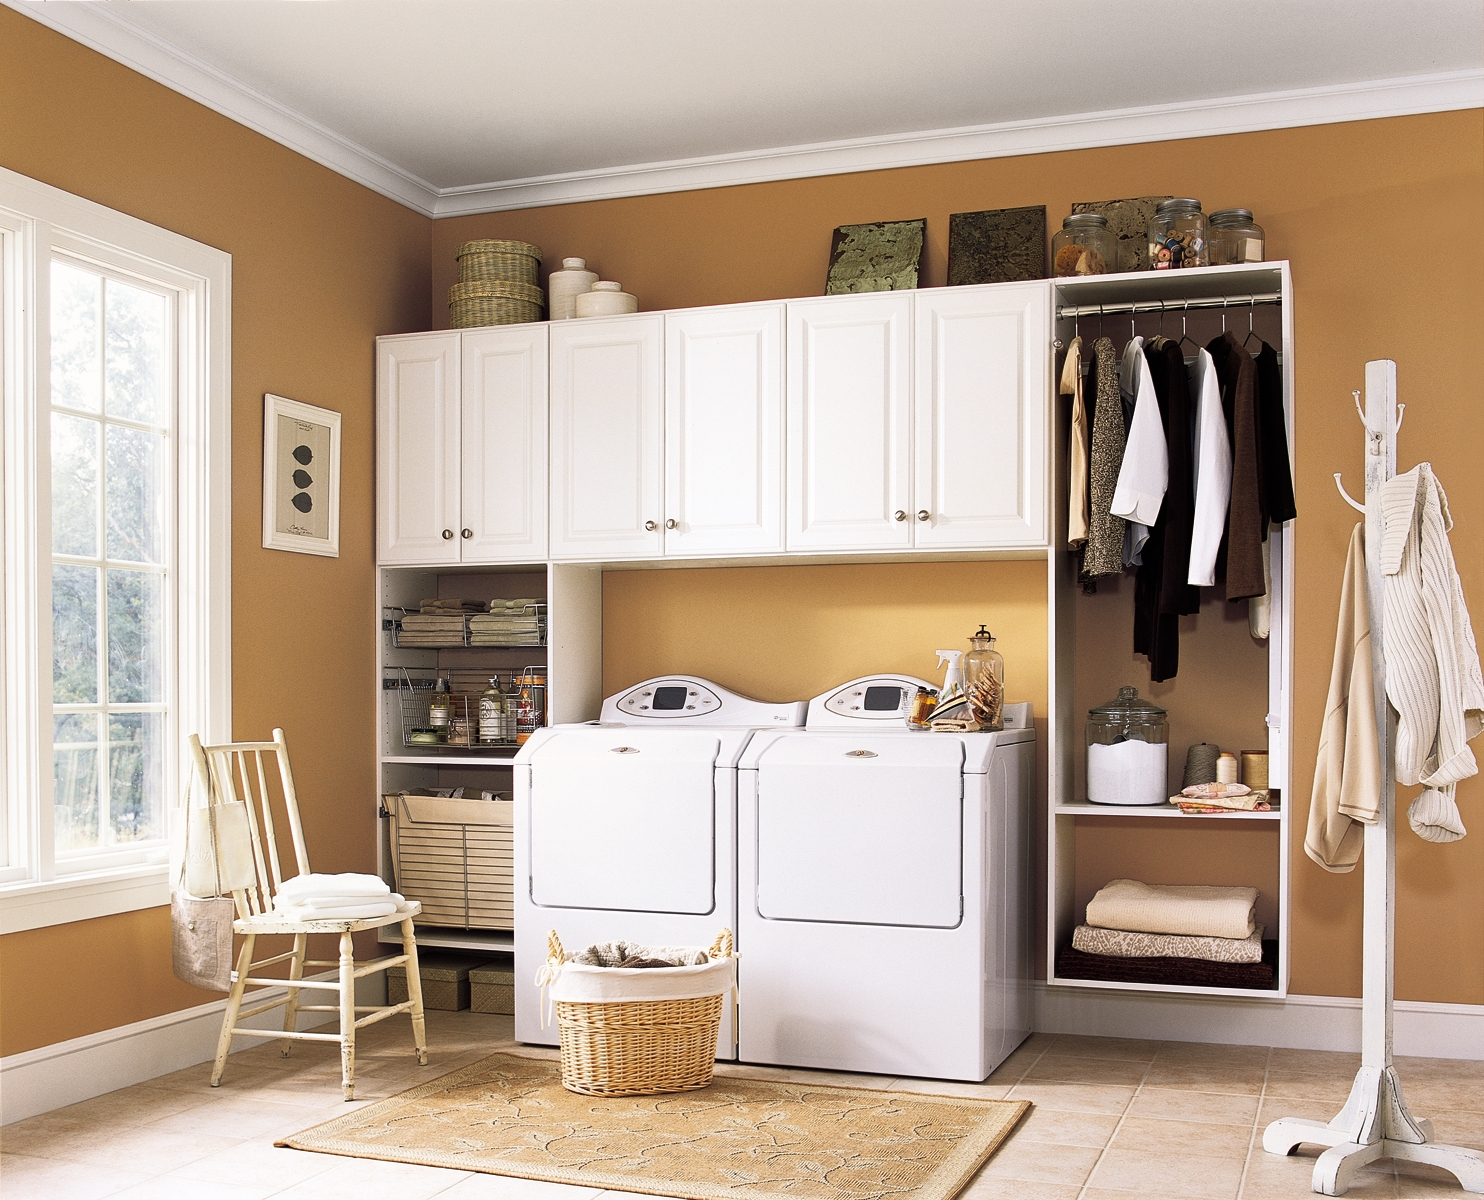 Laundry Room Storage, Organization and Inspiration on Laundry Room Organization Ideas  id=47453